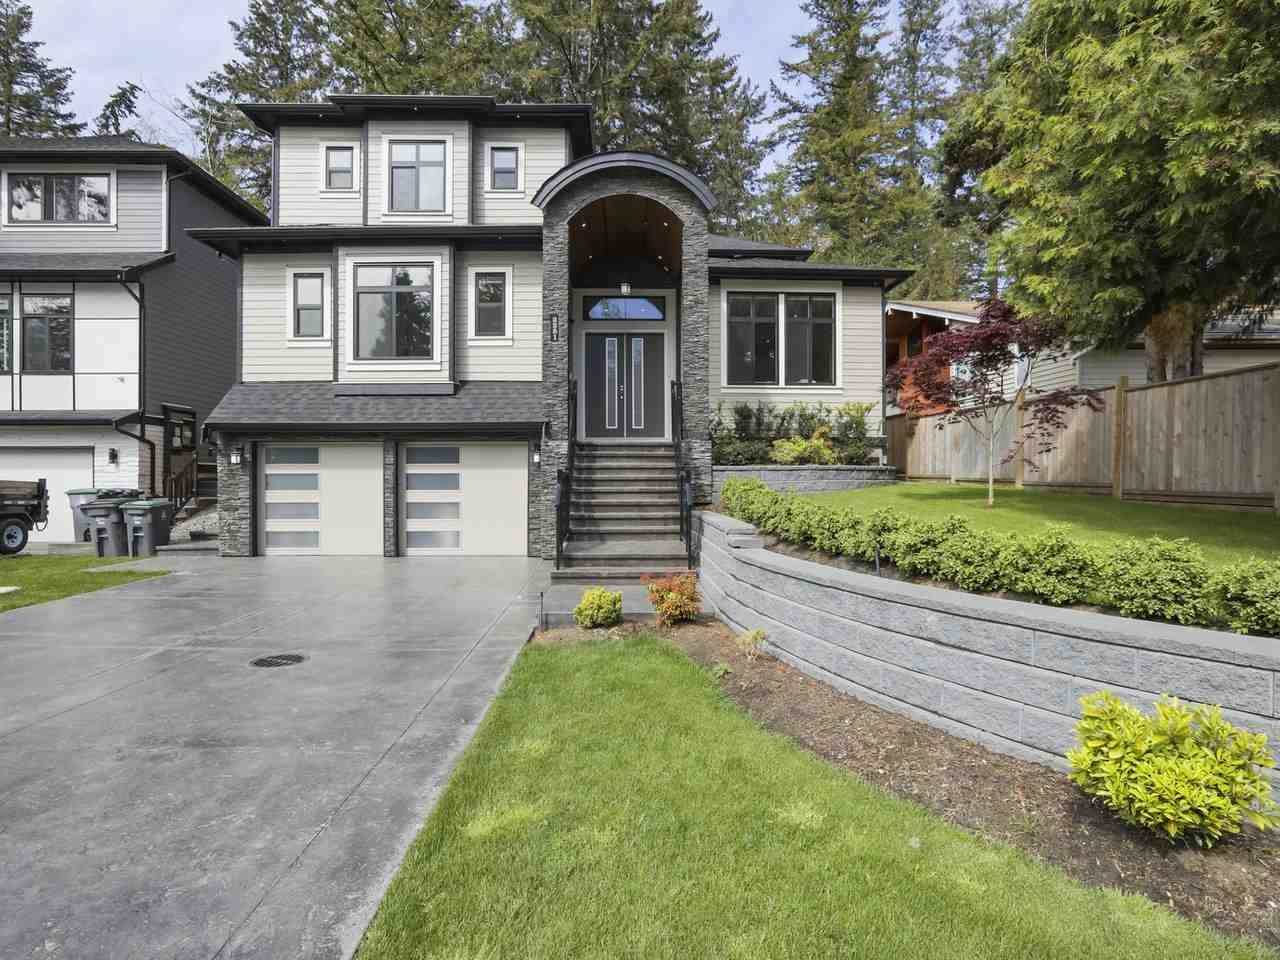 Removed: 2251 153a Street, Surrey, BC - Removed on 2019-12-01 04:36:04